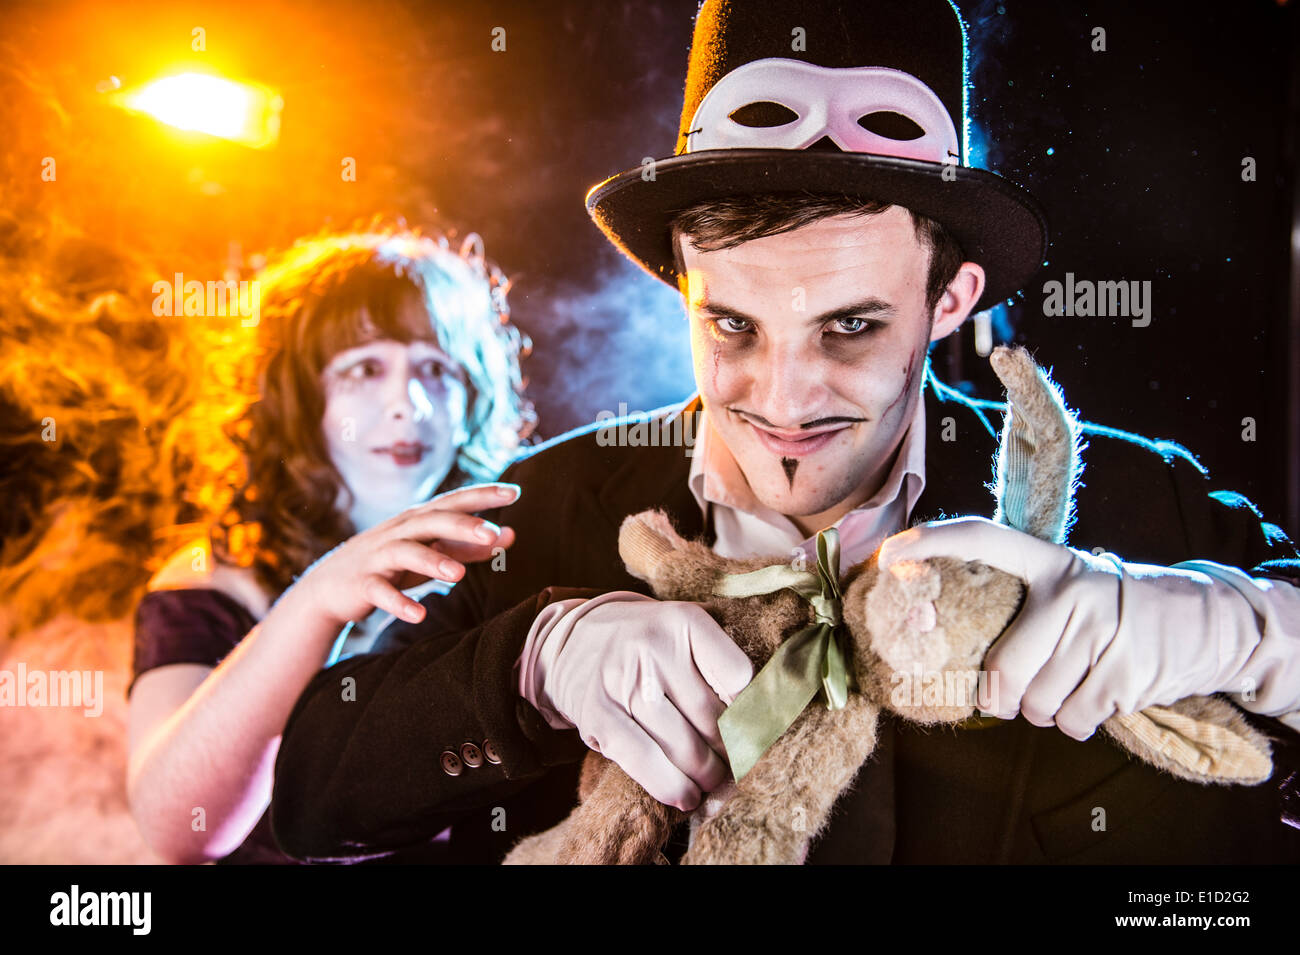 An evil smirking magician about to pull a childs soft toy rabbit's head off - Stock Image